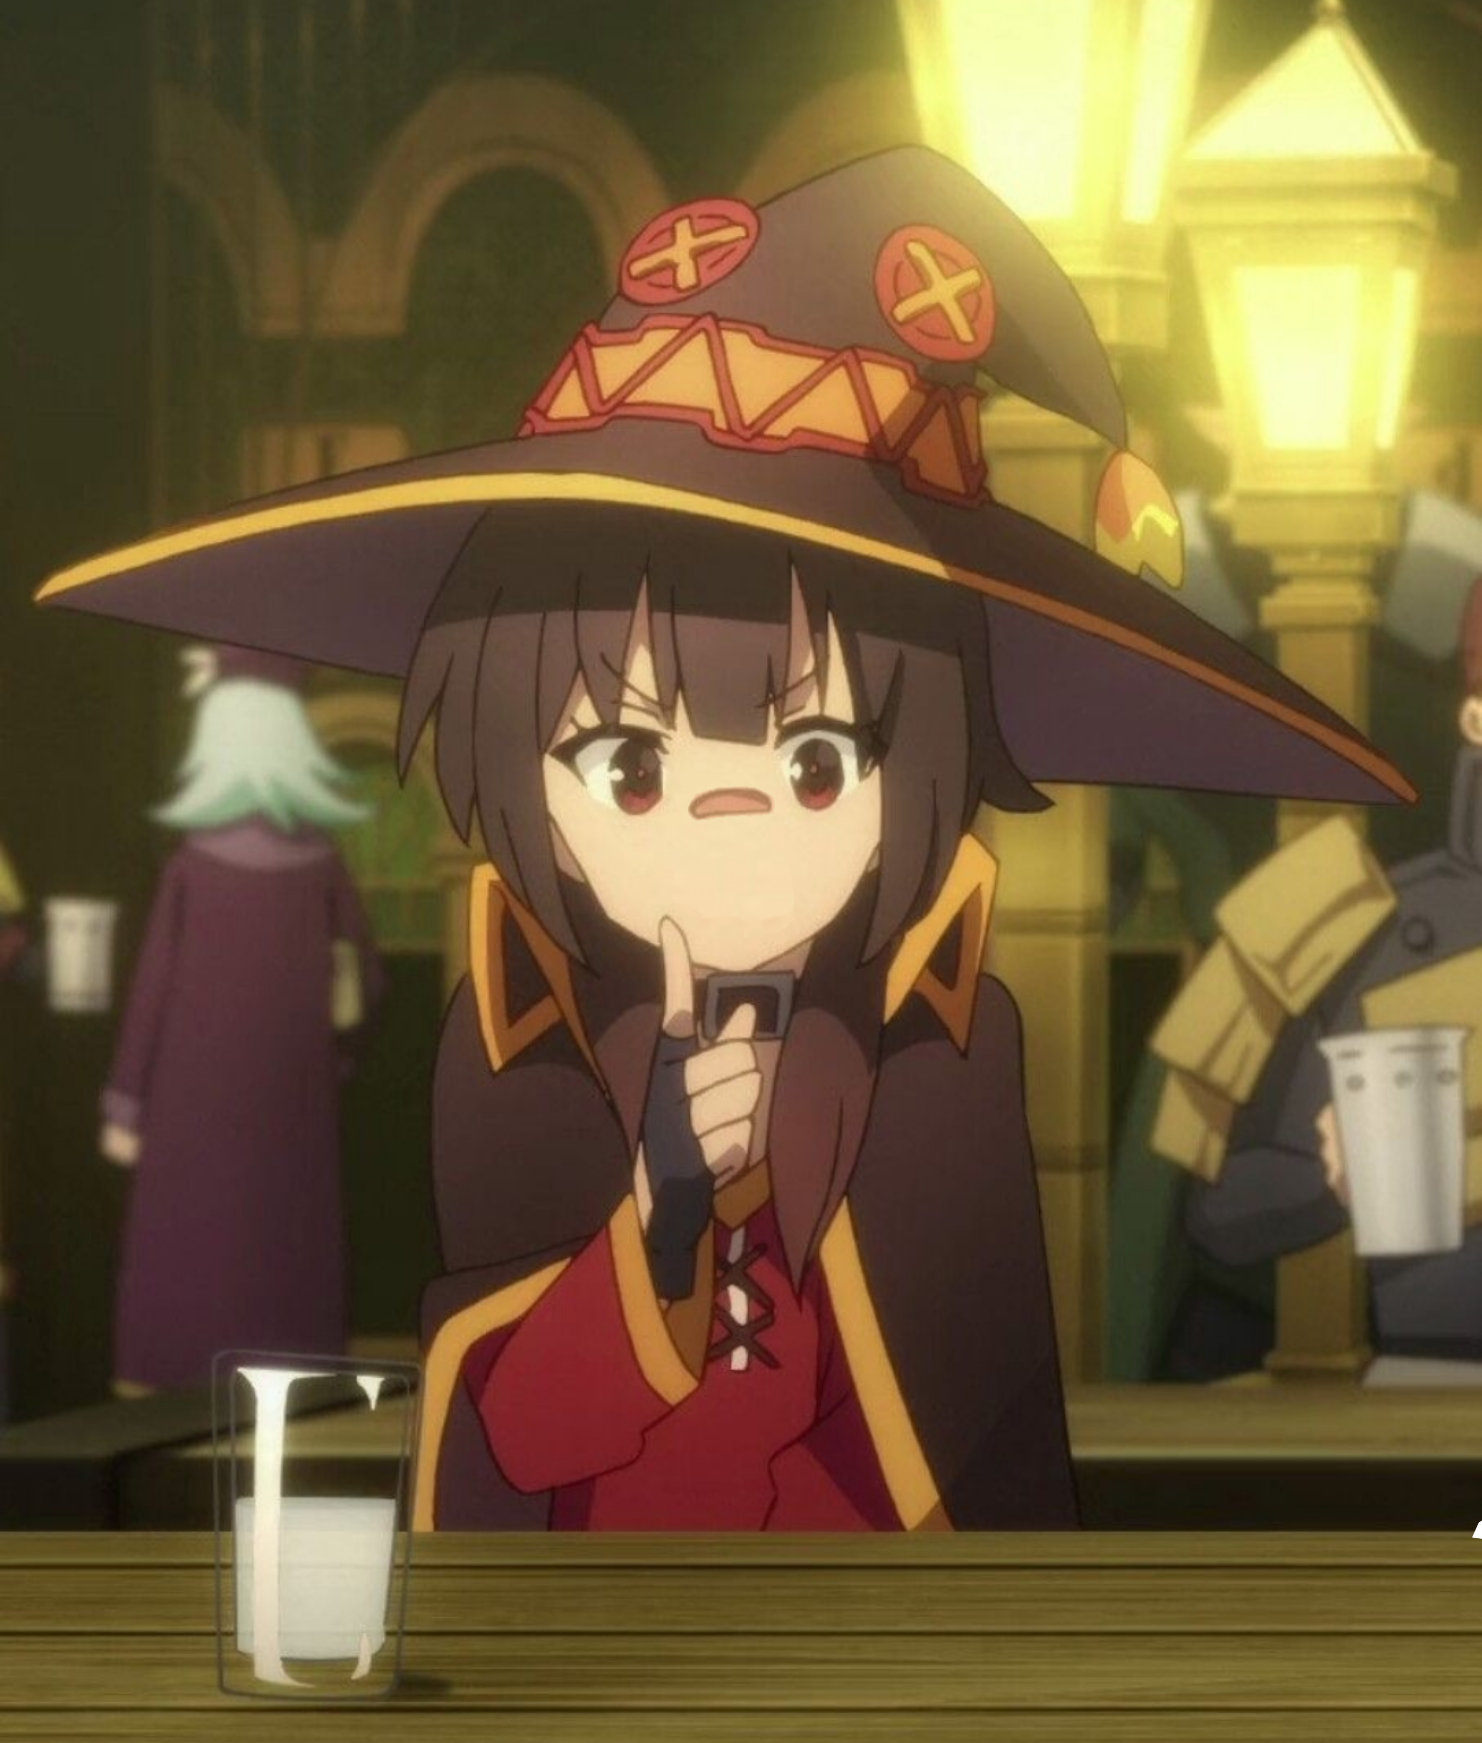 Megumin but I cropped it